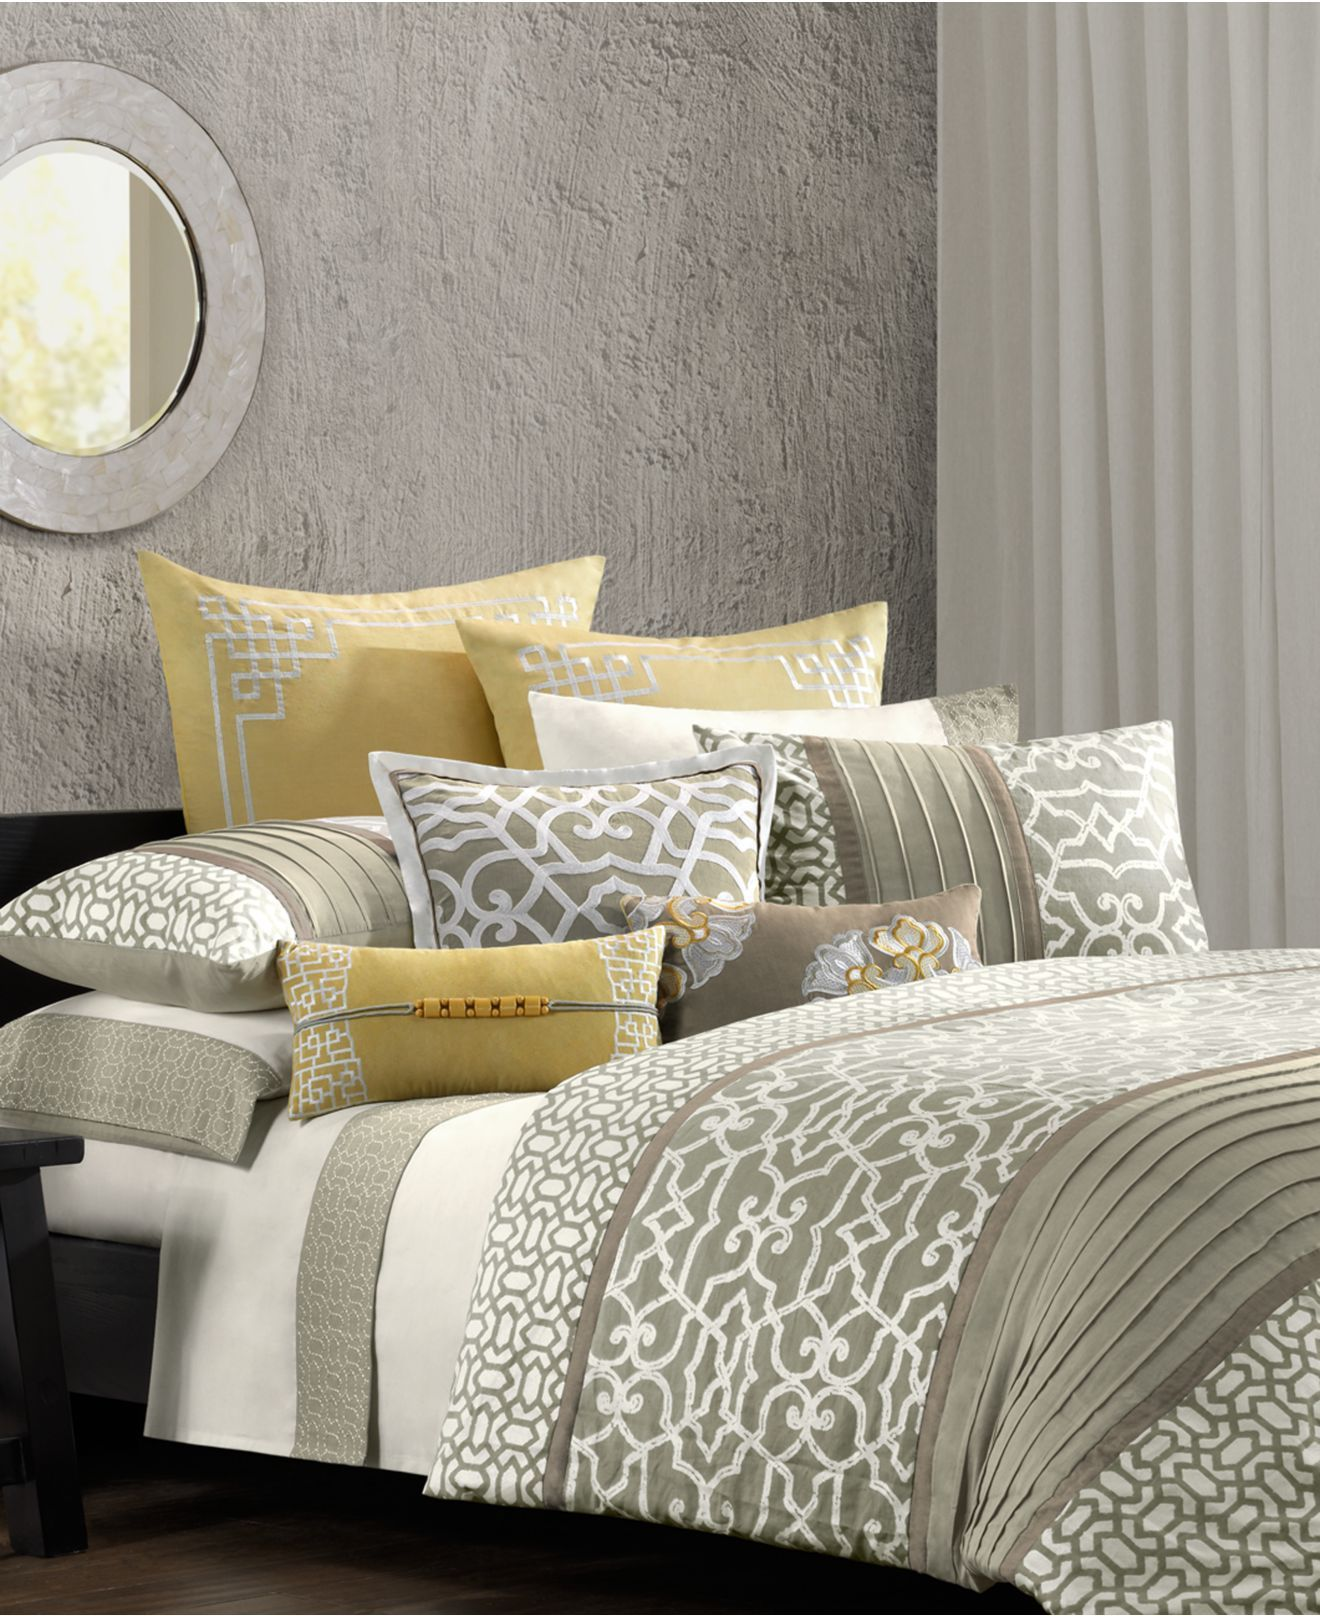 N Natori Bedding Fretwork Comforter Sets Bedding